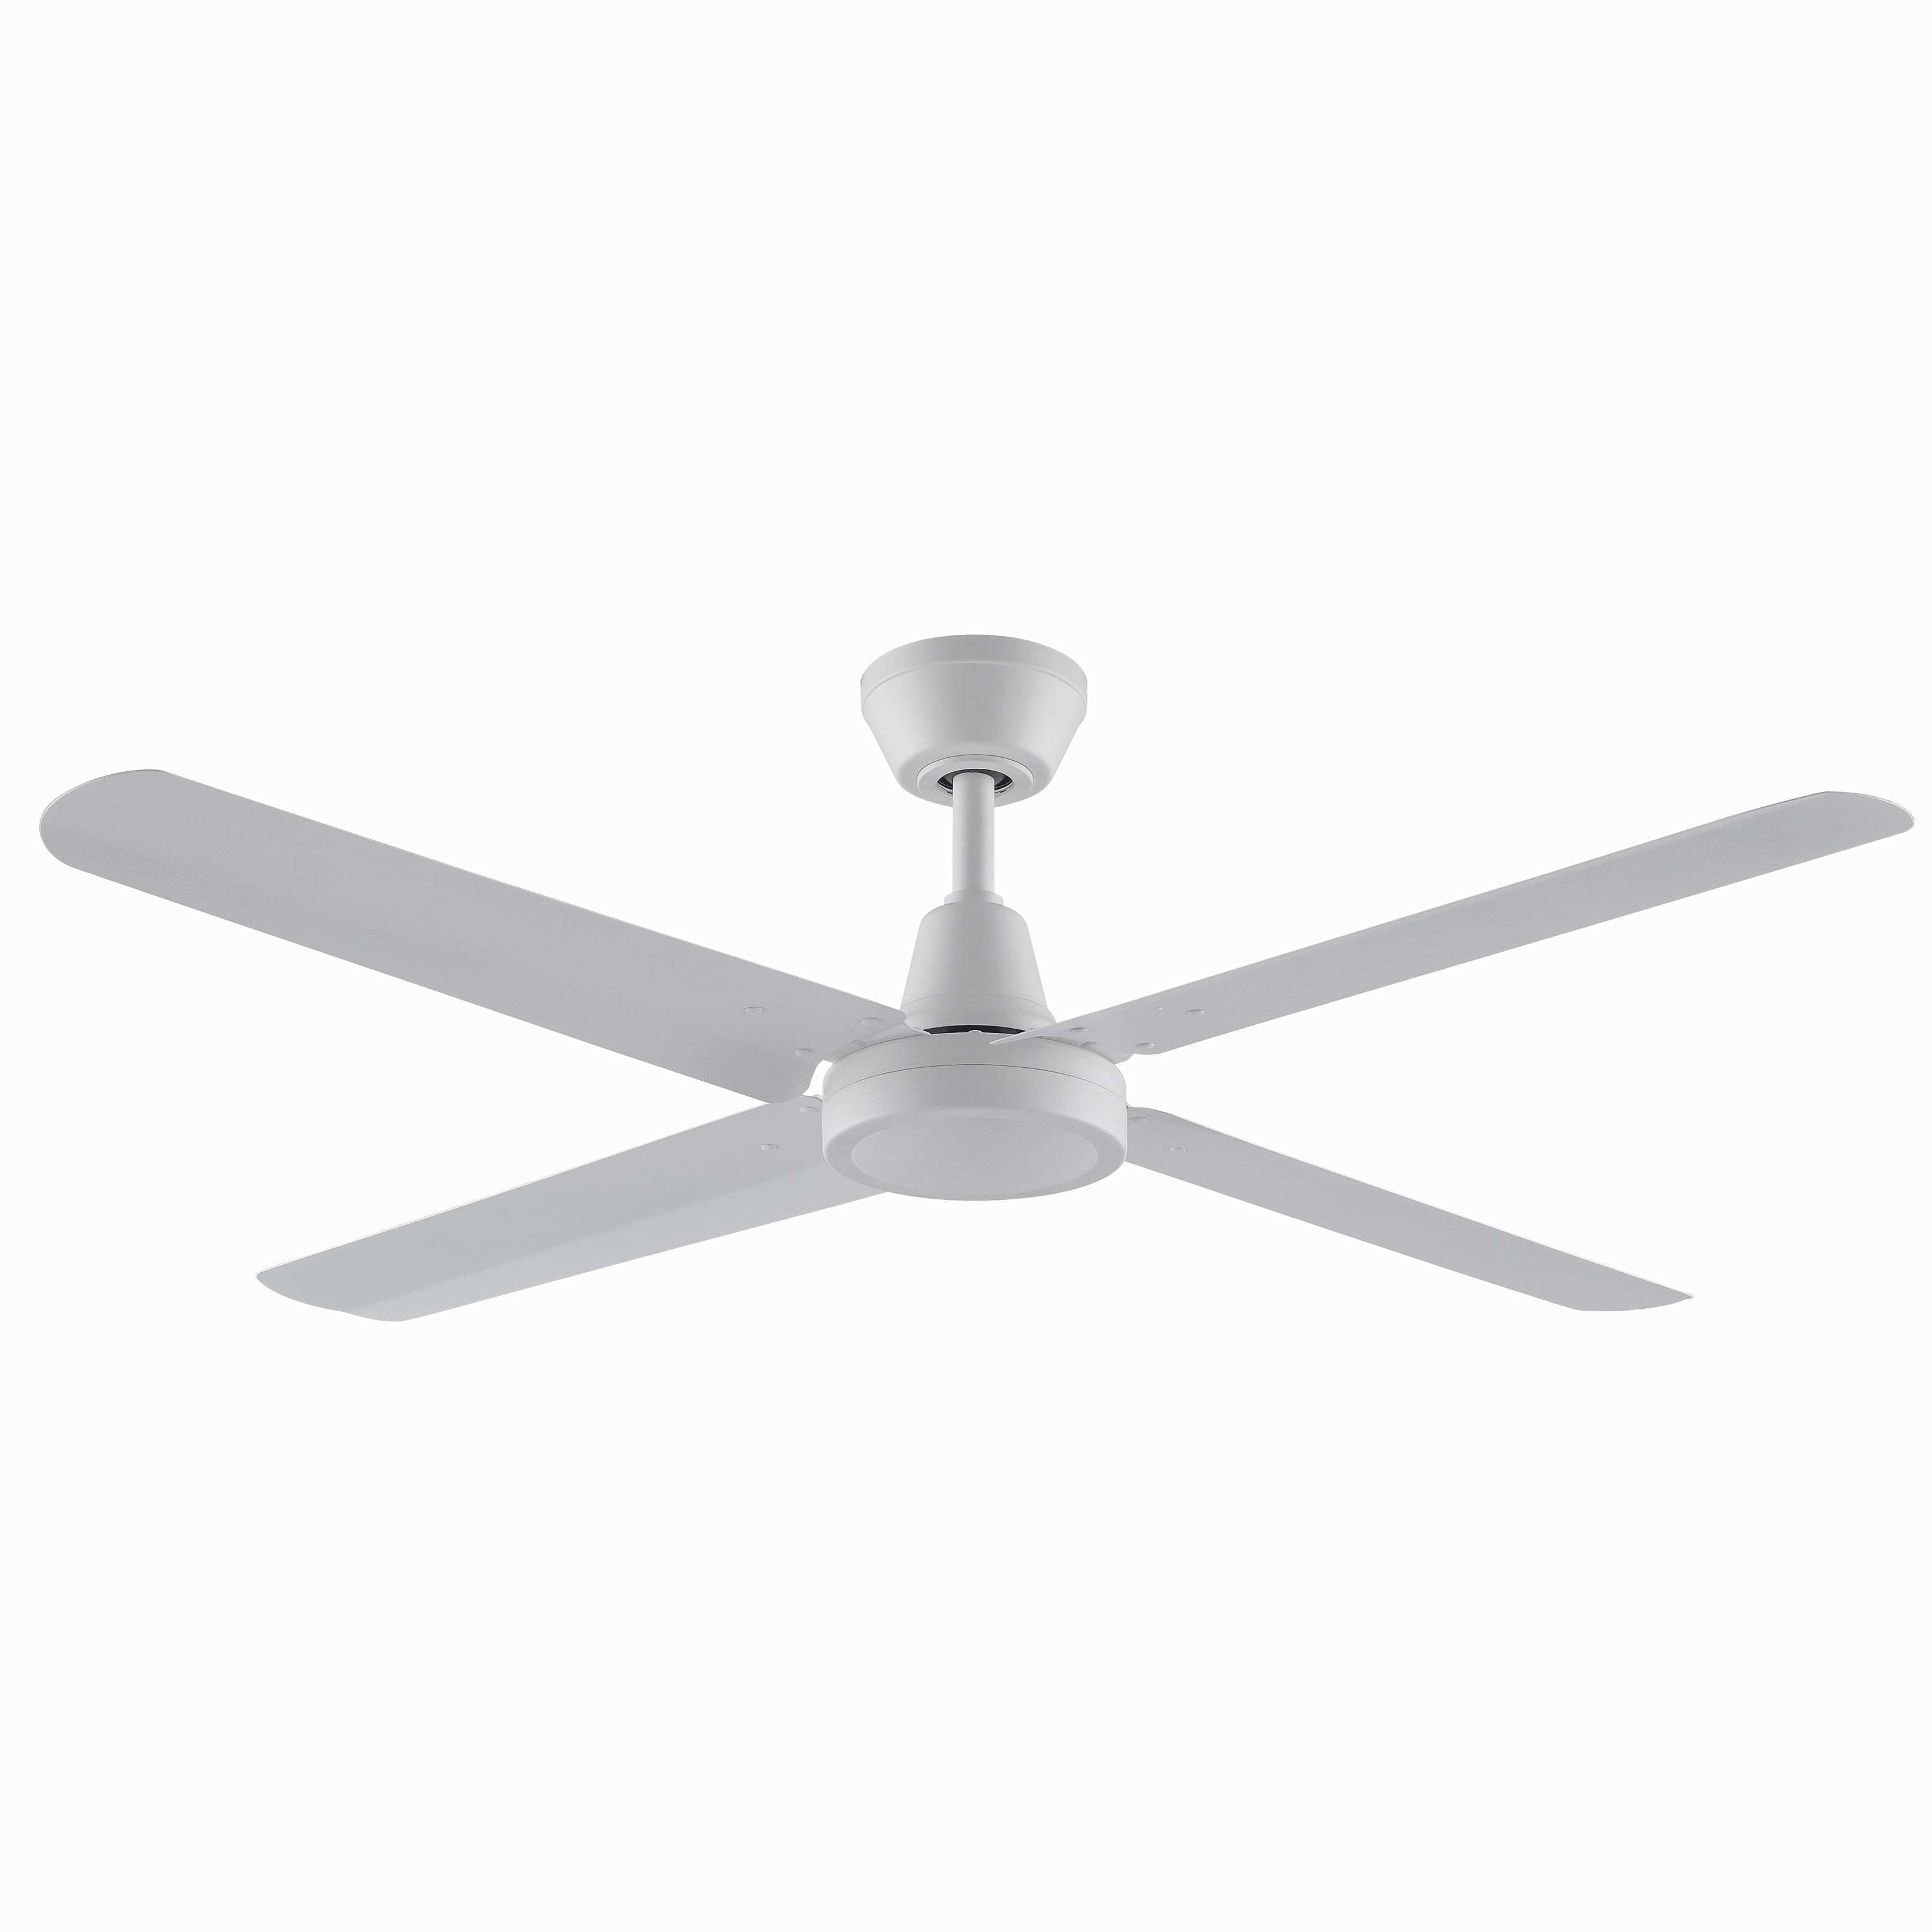 2018 Commercial Outdoor Ceiling Fans With Regard To Commercial Outdoor Ceiling Fans (View 13 of 20)